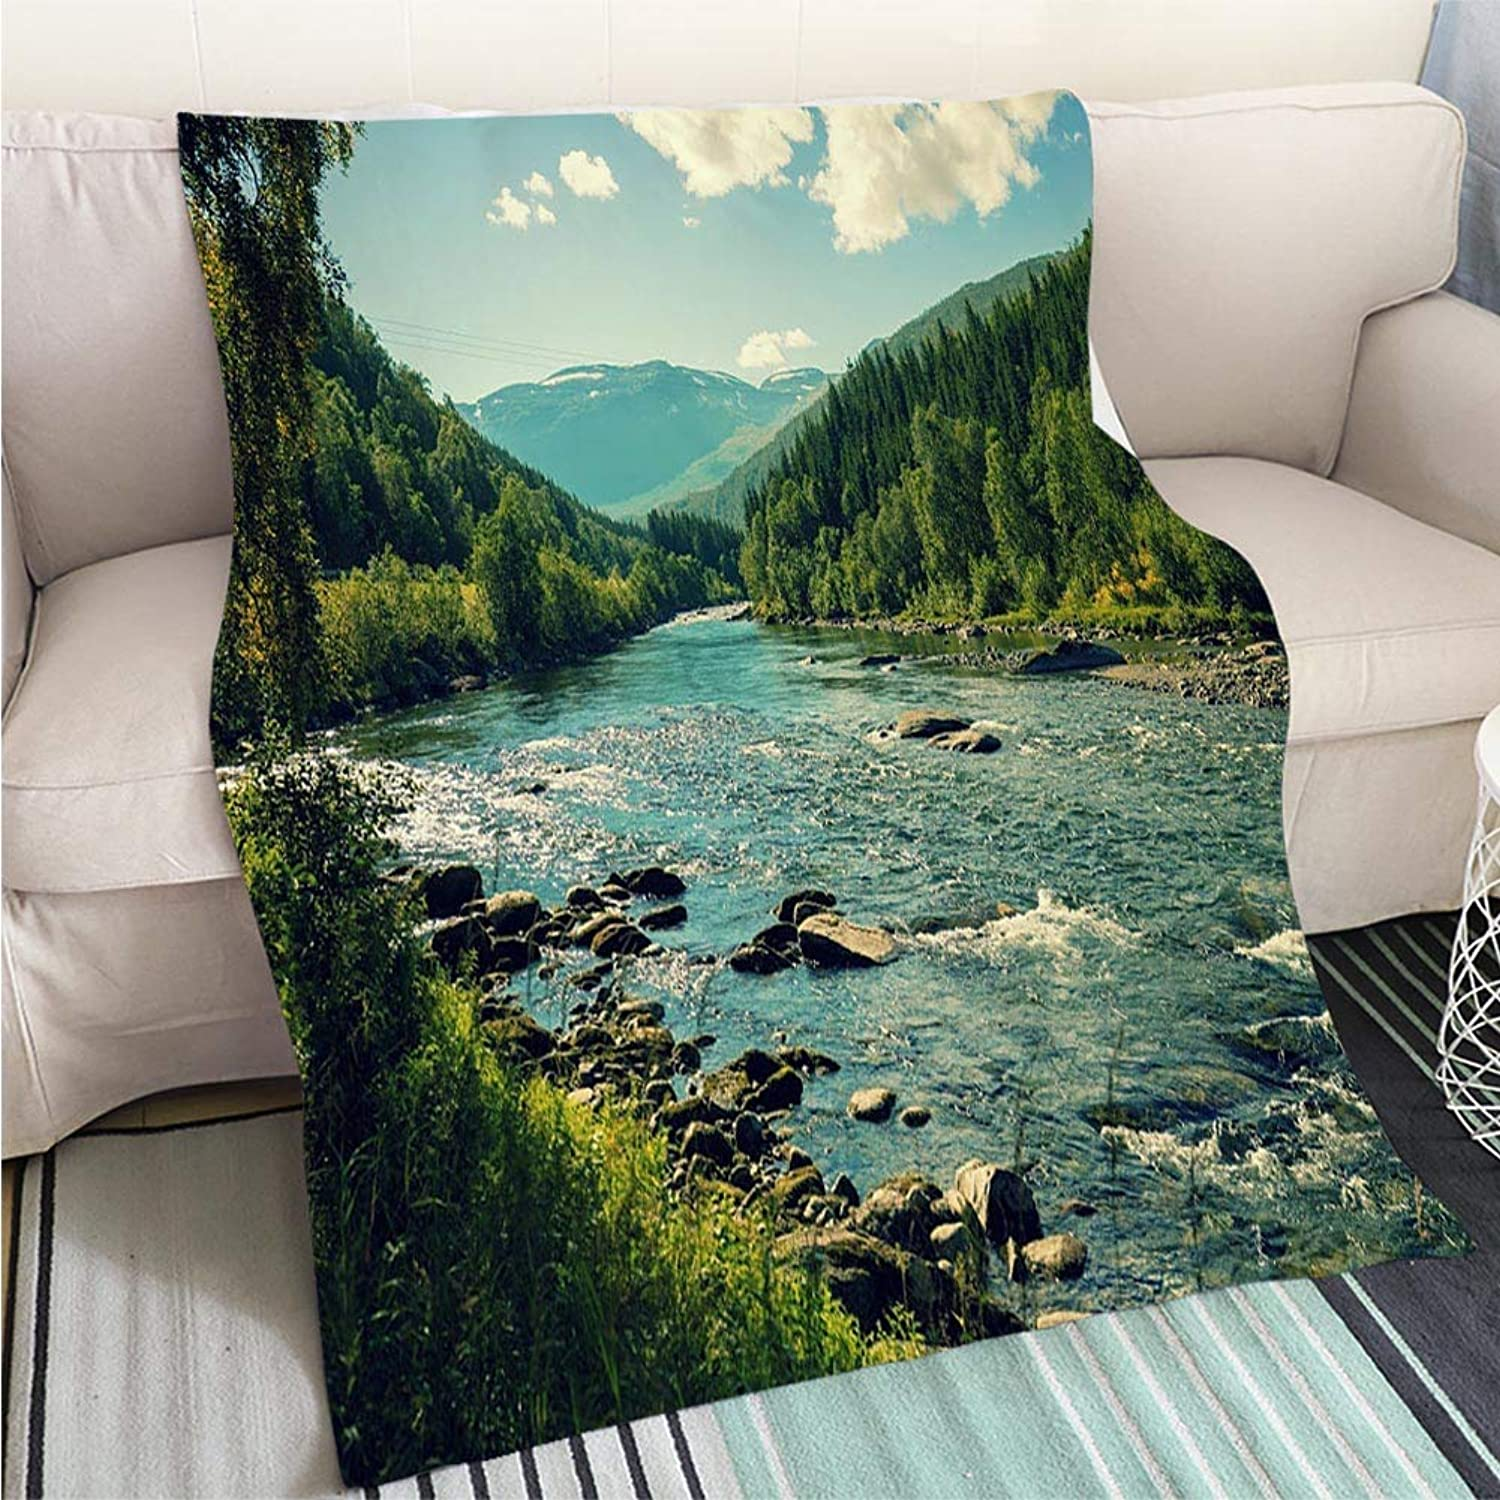 BEICICI Comforter Multicolor Bed or Couch Mountain River in Autumn Norway Art Blanket as Bedspread gold White Bed or Couch